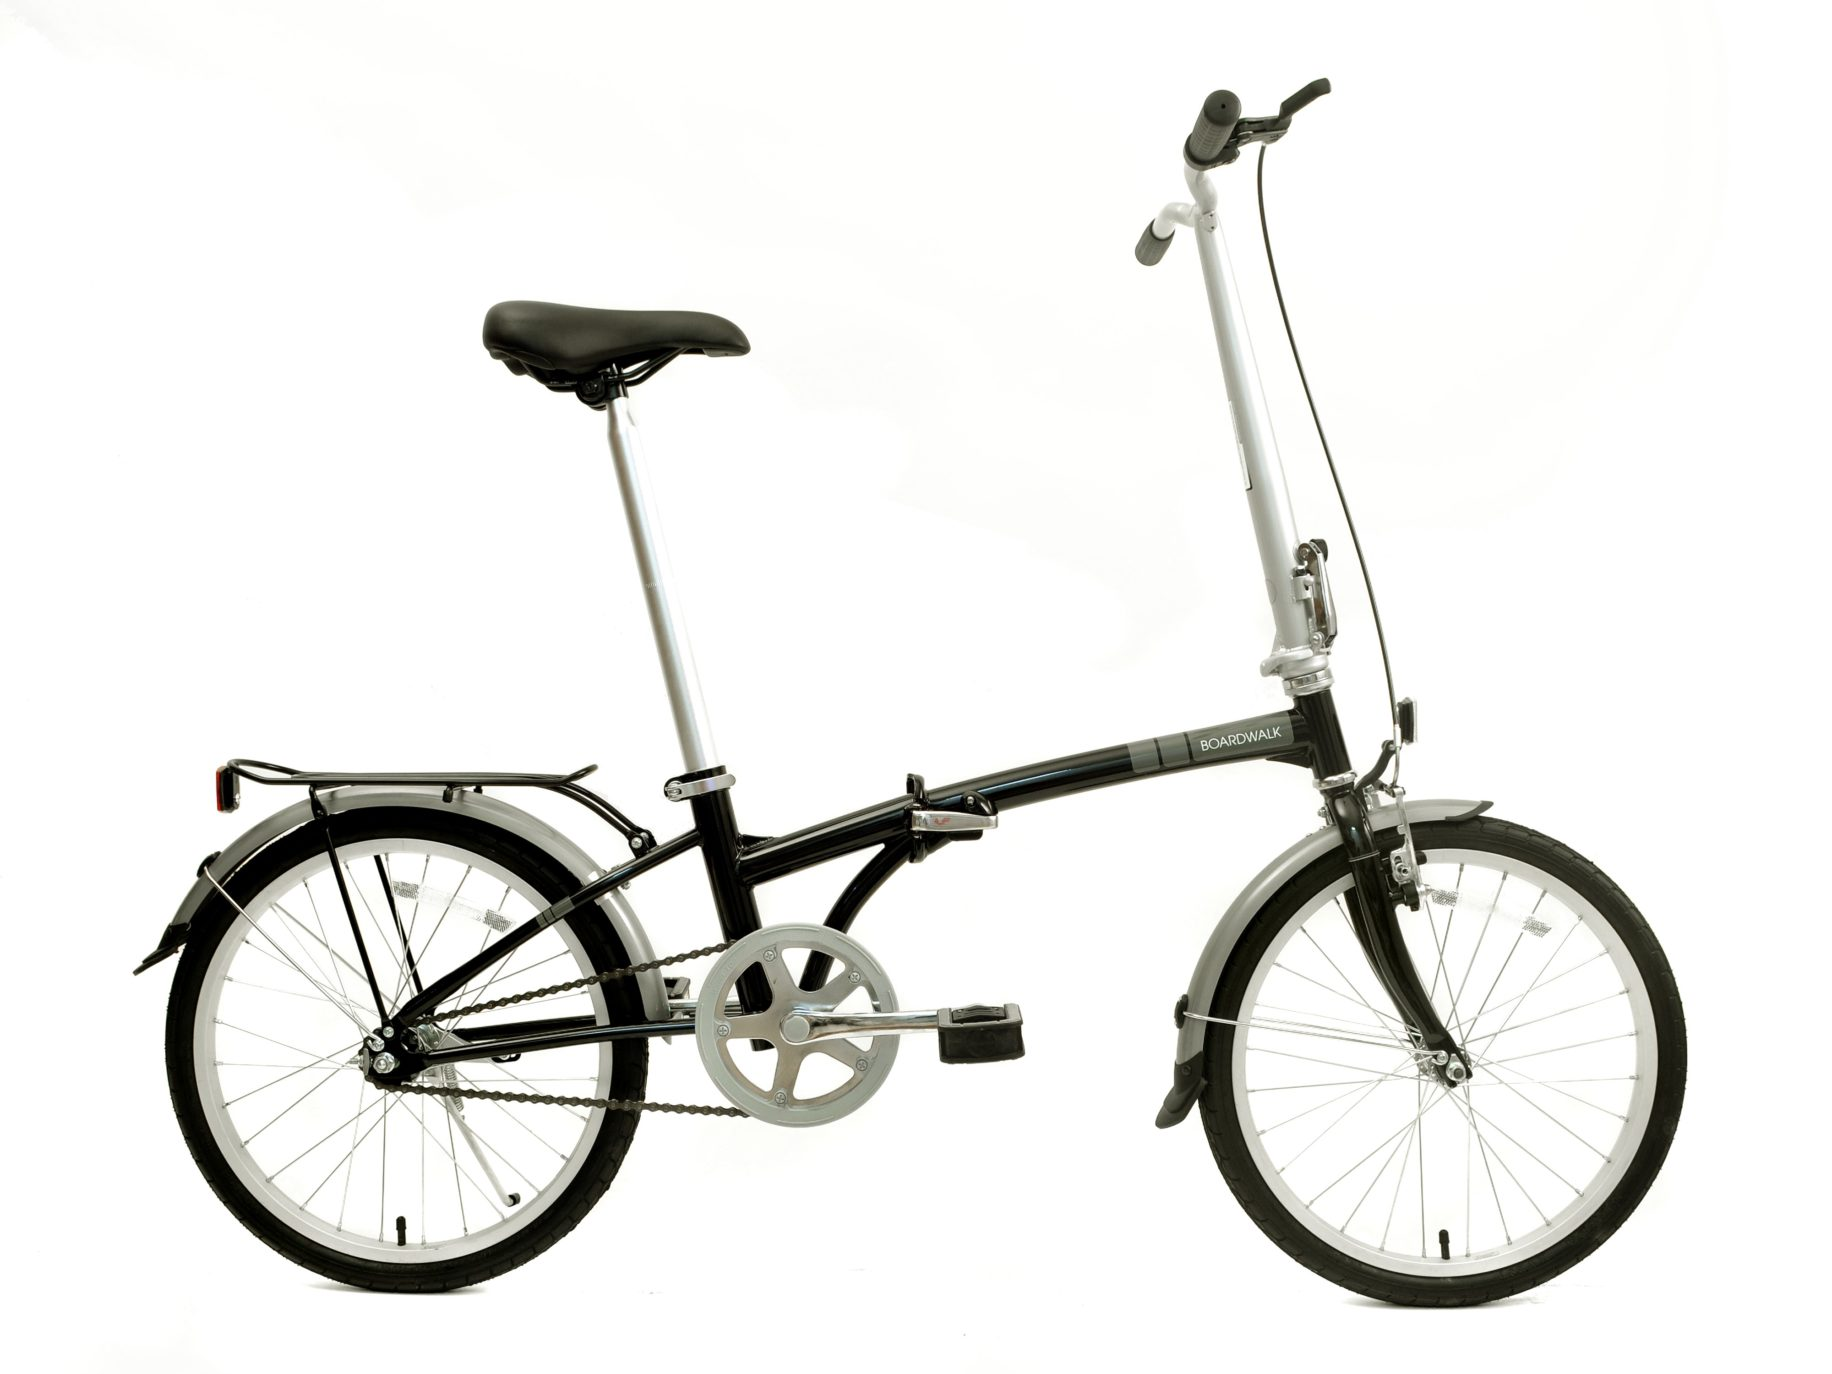 Dahon S Mu P8 Ciao D7 Boardwalk S1 And Vybe C7a Now